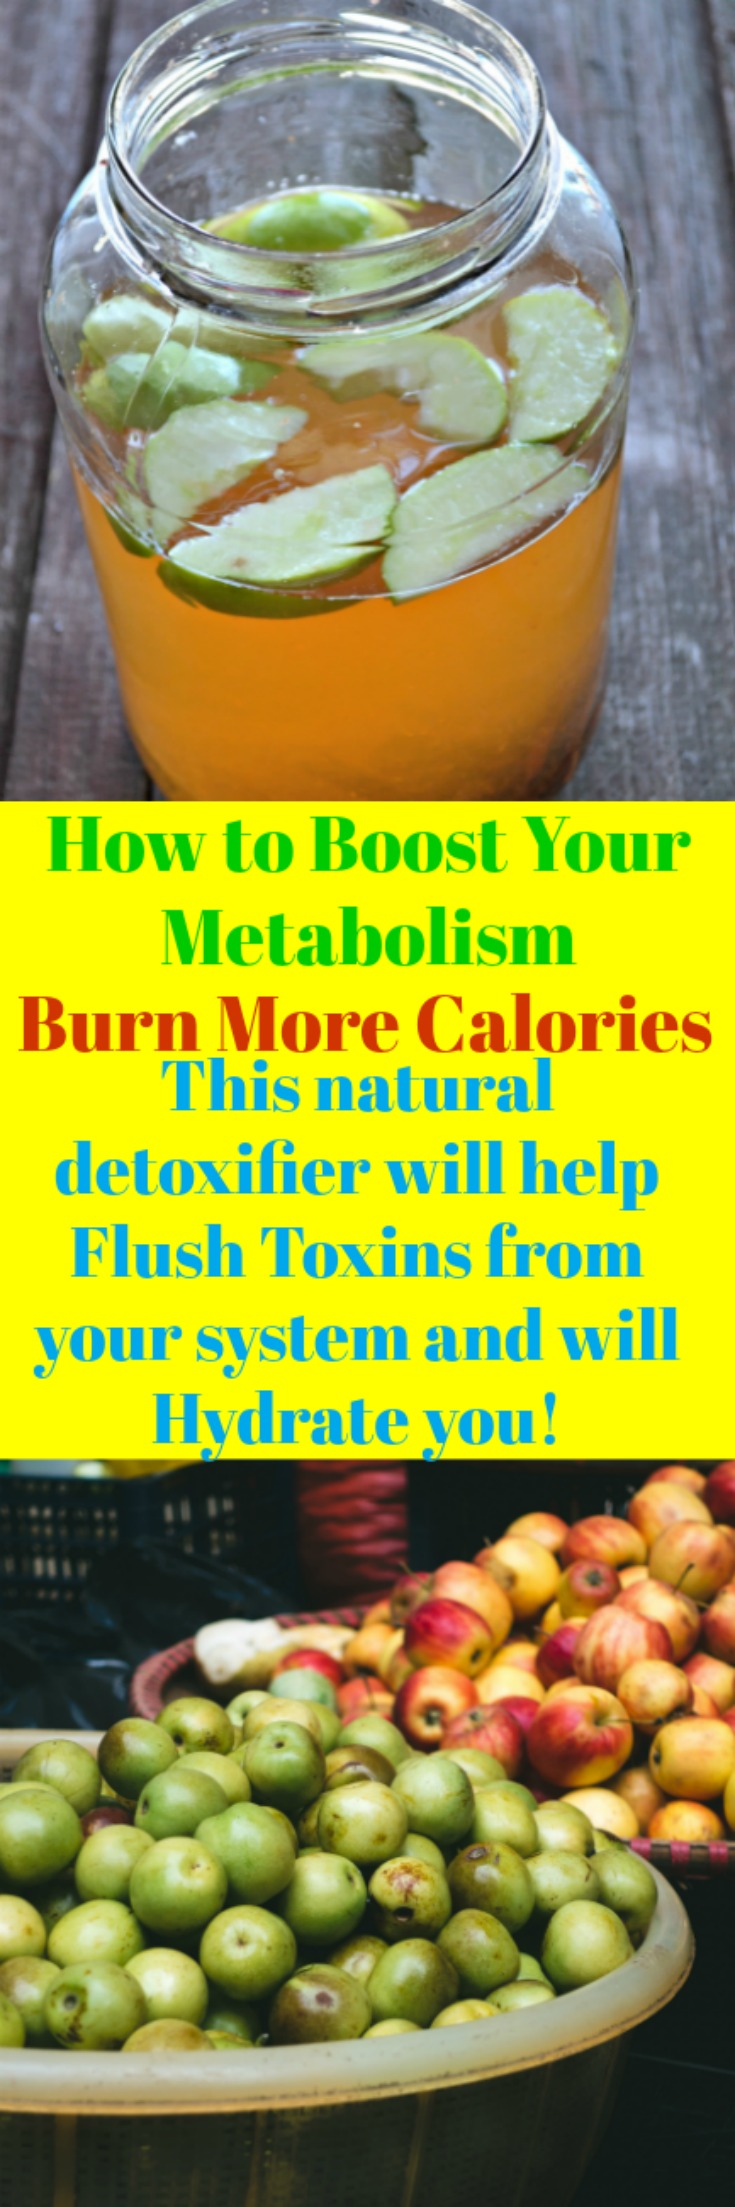 Apple Cinnamon Metabolism Detox Water to jump start your system into weight loss mode.  Speed up your metabolism and burn more calories which in turn make you feel amazingly remarkable. There is no magic pill for weight loss, just hard work and putting the right foods into your system like this drink!